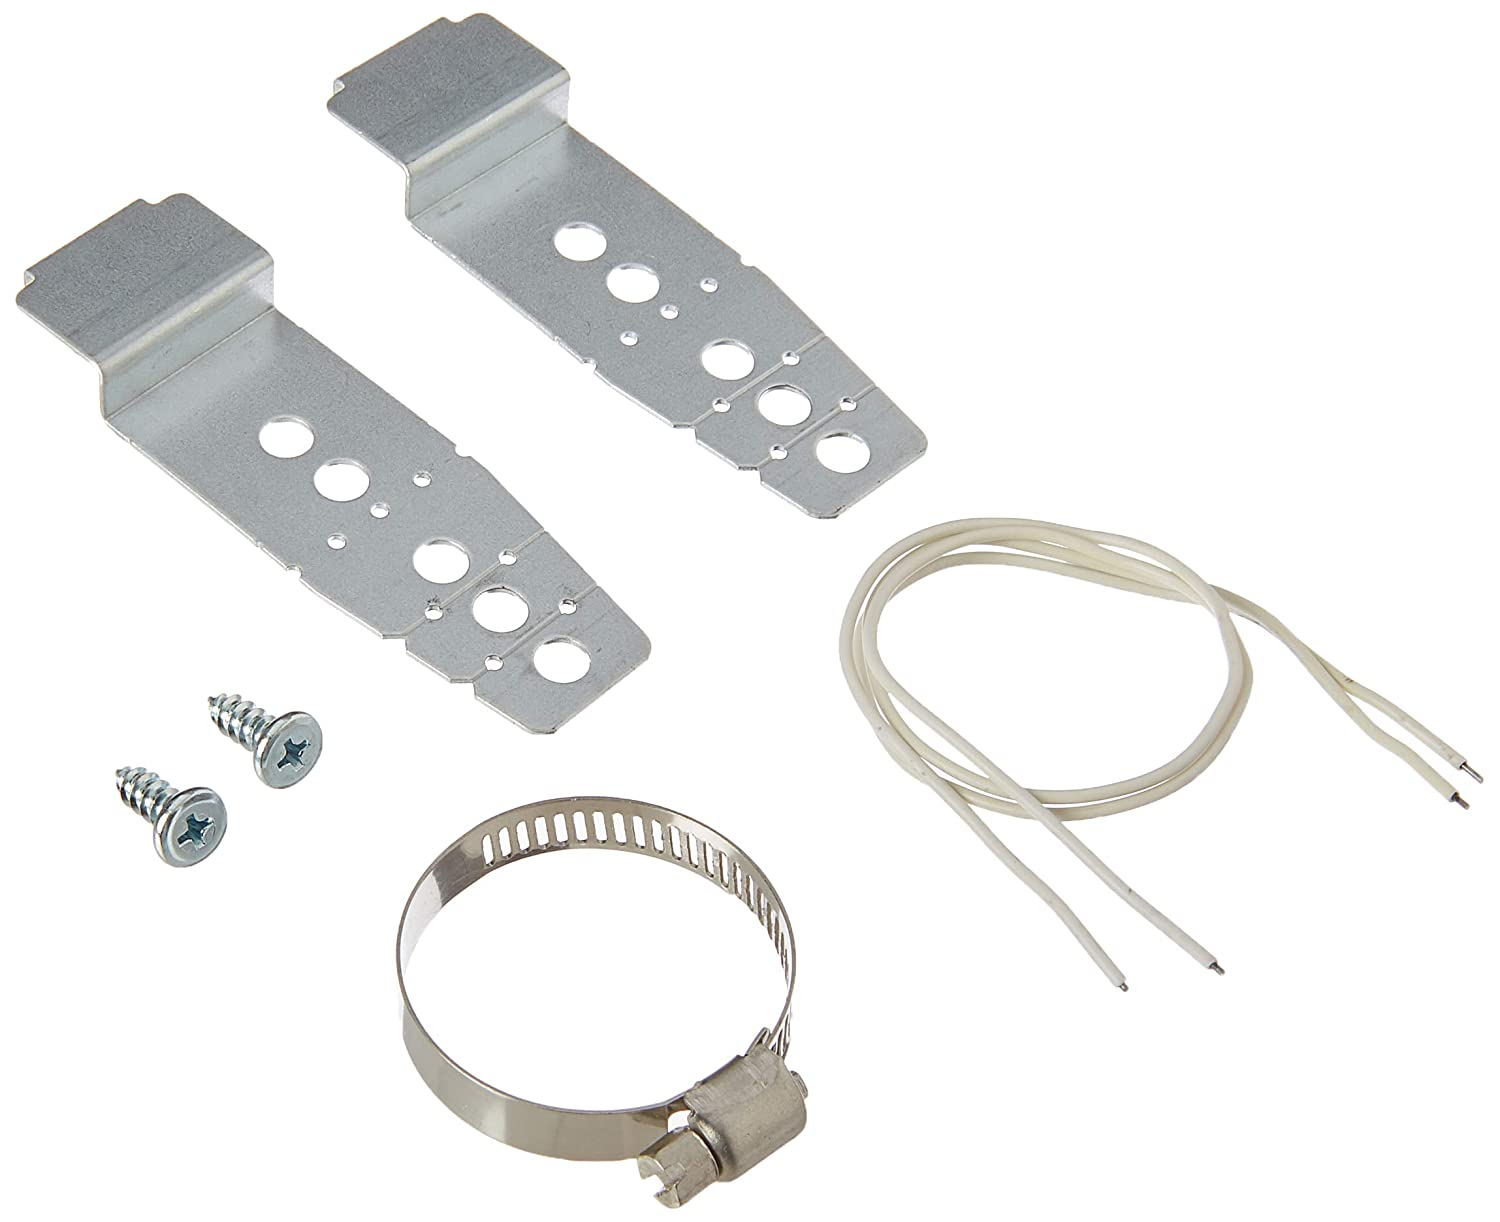 LG 5001DD4001A Bracket Kit, Dishwasher